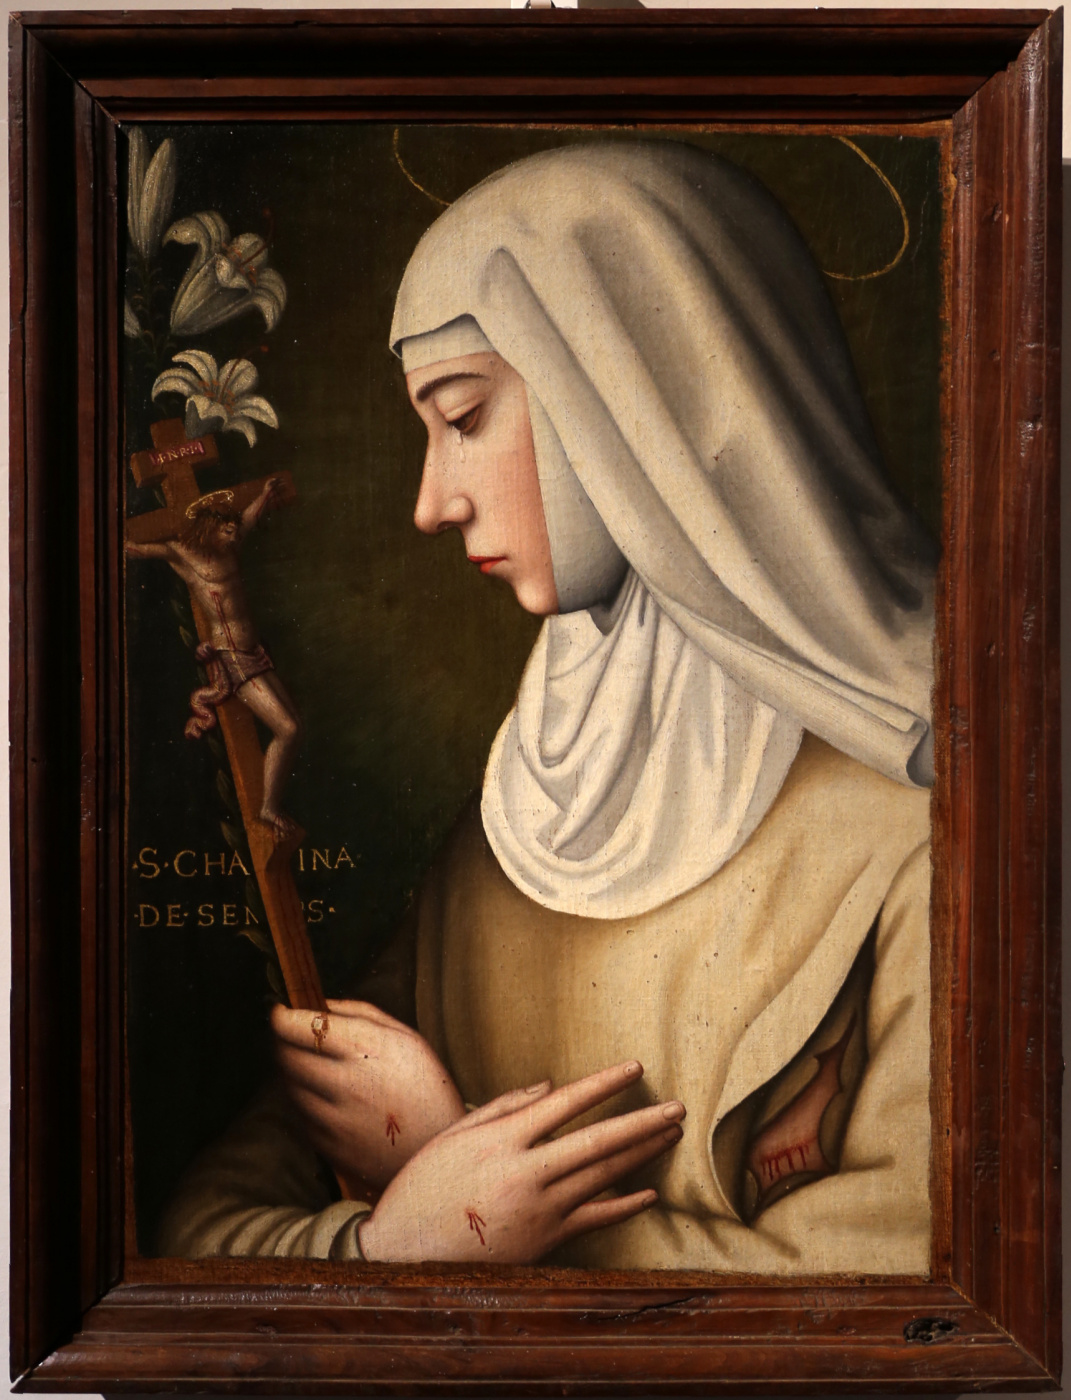 Plautilla Nelly. Saint Catherine with the Crucifixion